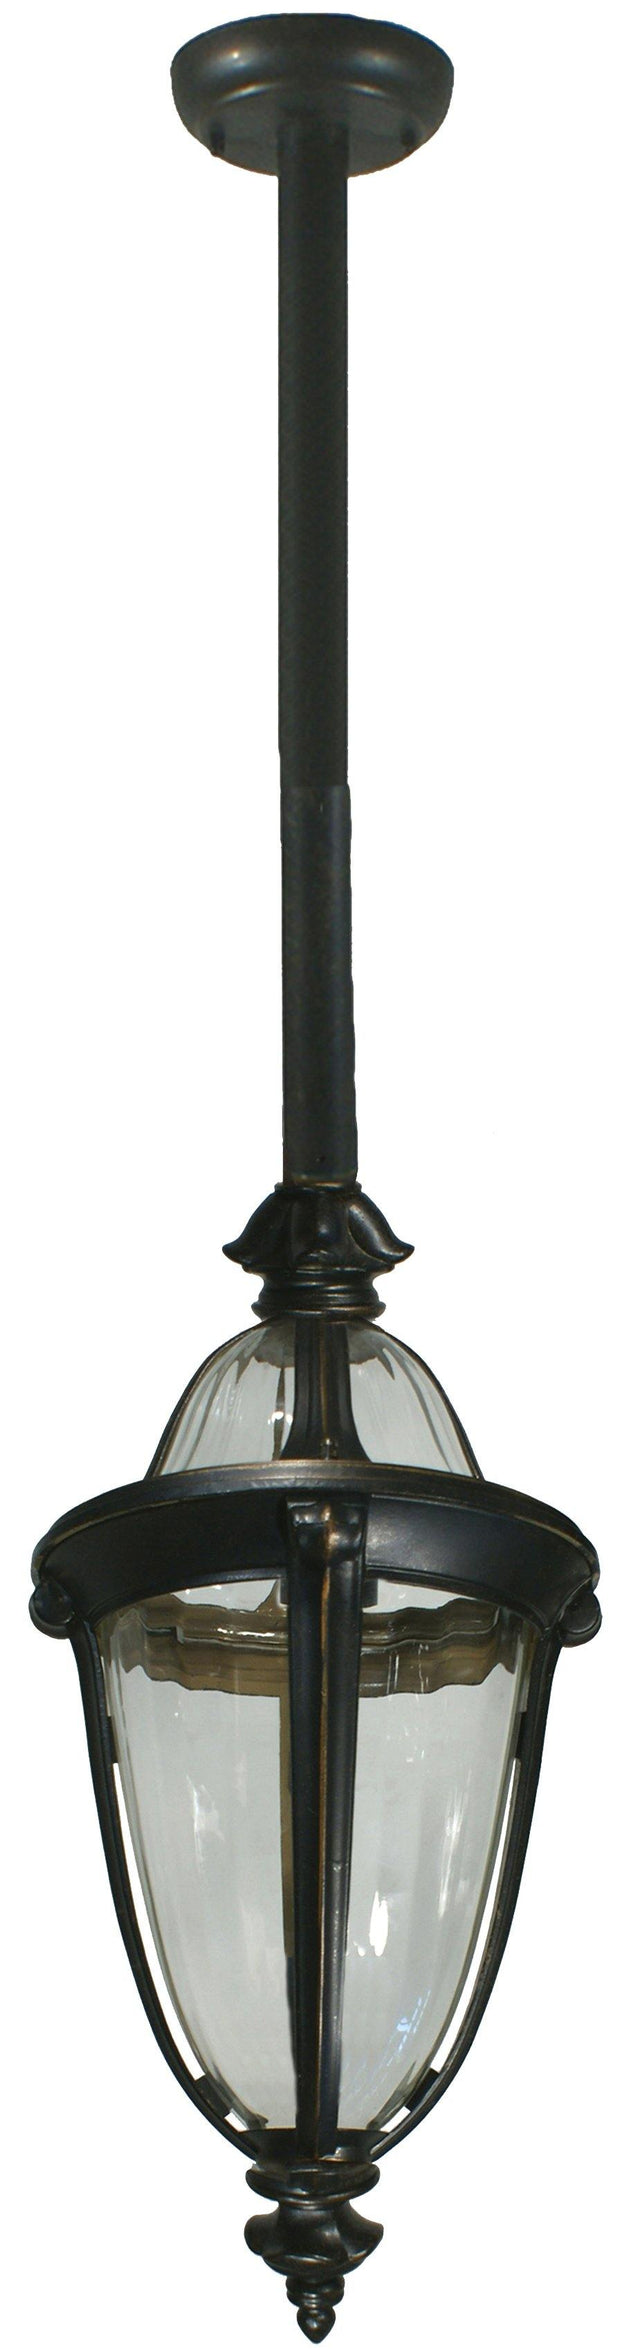 Mayfair Exterior Pendant Light